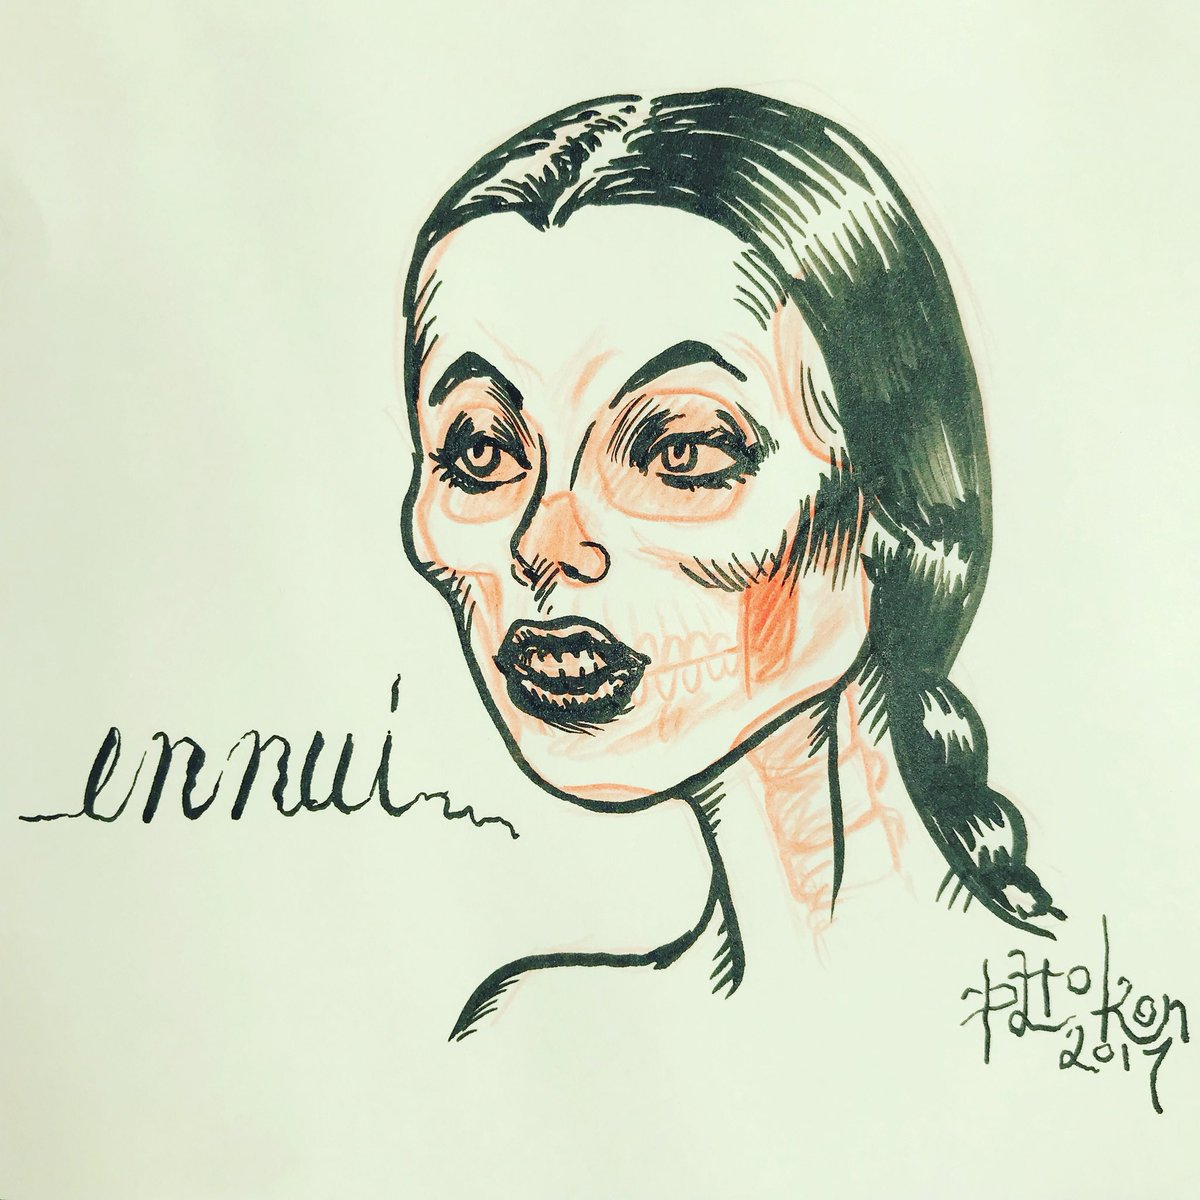 Inspired by photo of a Spider Pool model. #ink #inktober #inktober2017 #lips #skull #ennui #braid #beauty #art #vintage #spiderpool<br>http://pic.twitter.com/8KnkVMSuxb